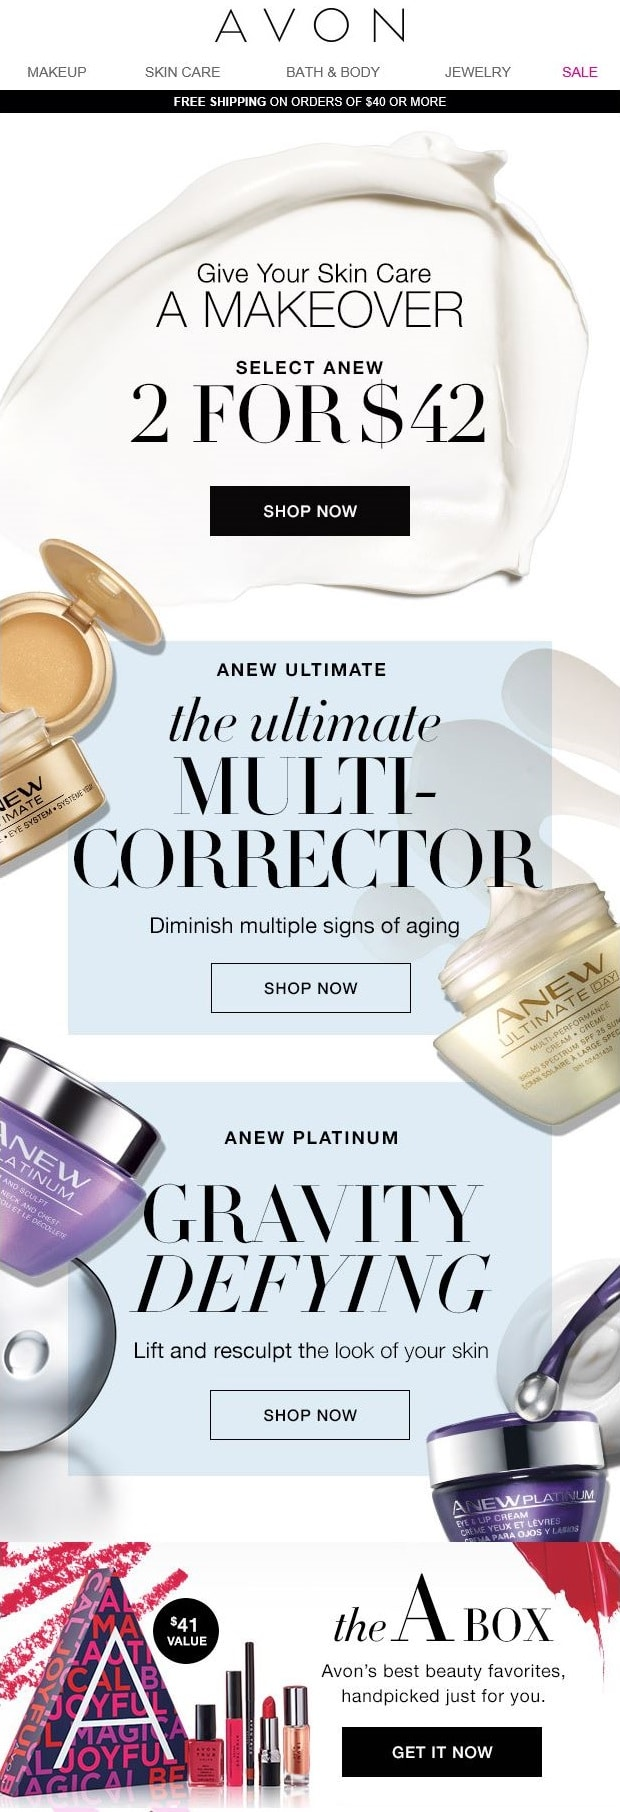 Anew Platinum & Anew Ultimate - buy 2 for $42